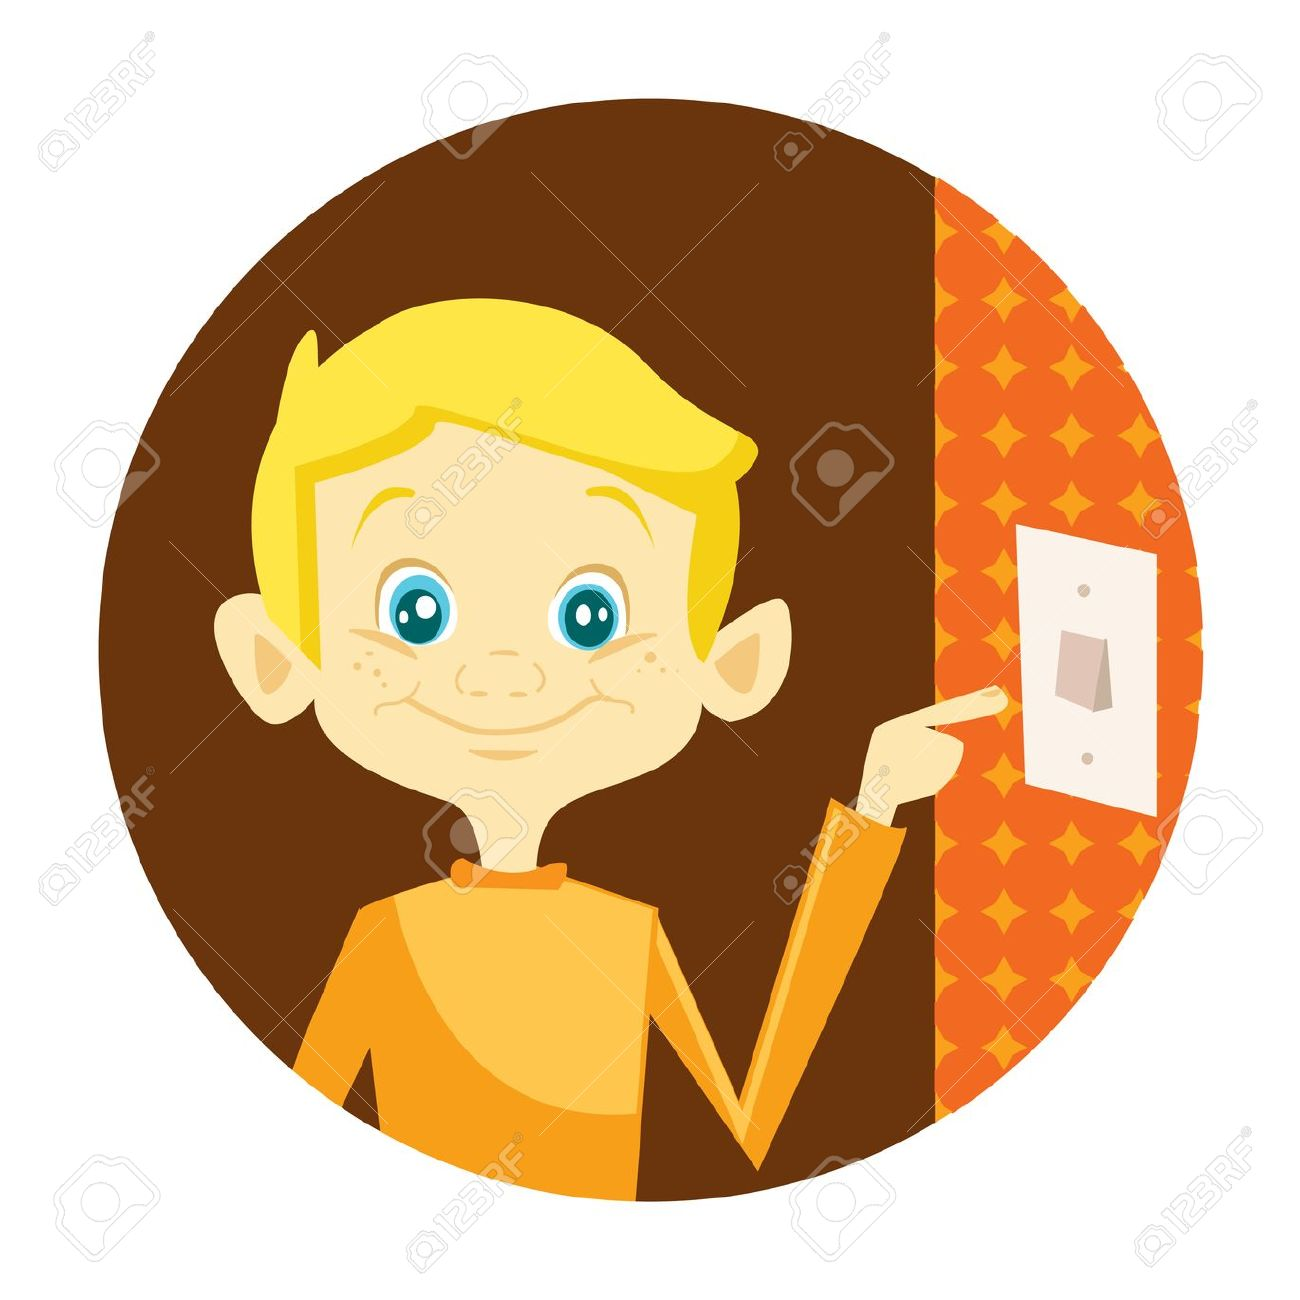 Kid Turning Off The Light Illustration Royalty Free Cliparts.